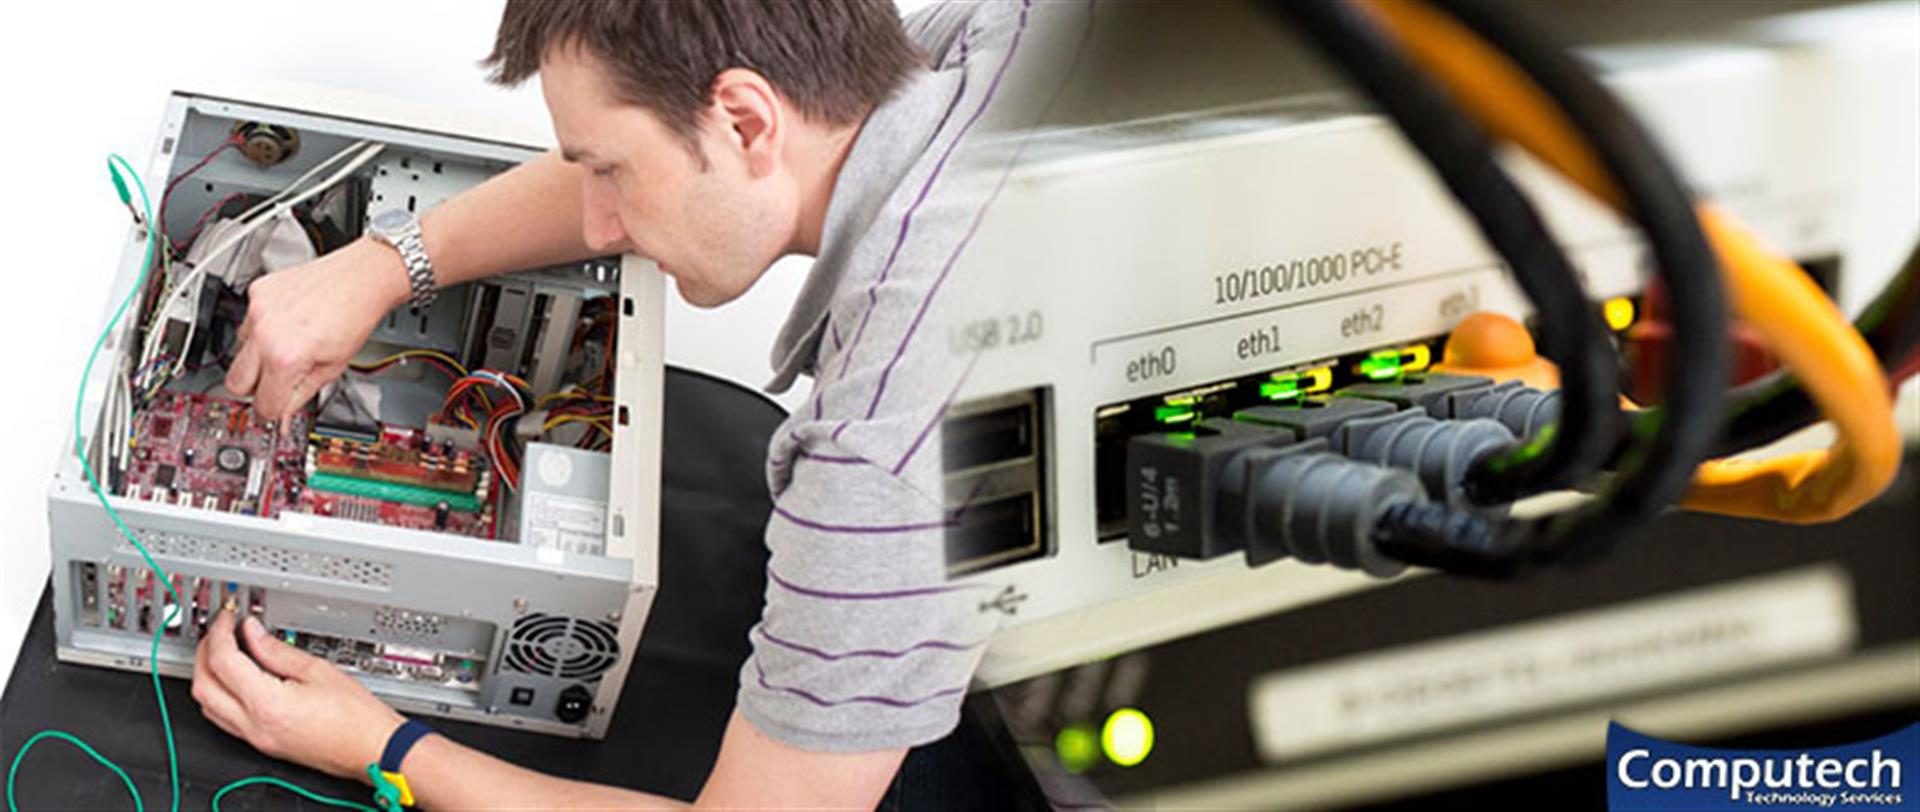 Taylor Arizona Onsite PC & Printer Repair, Networking, Voice and High Speed Data Wiring Solutions